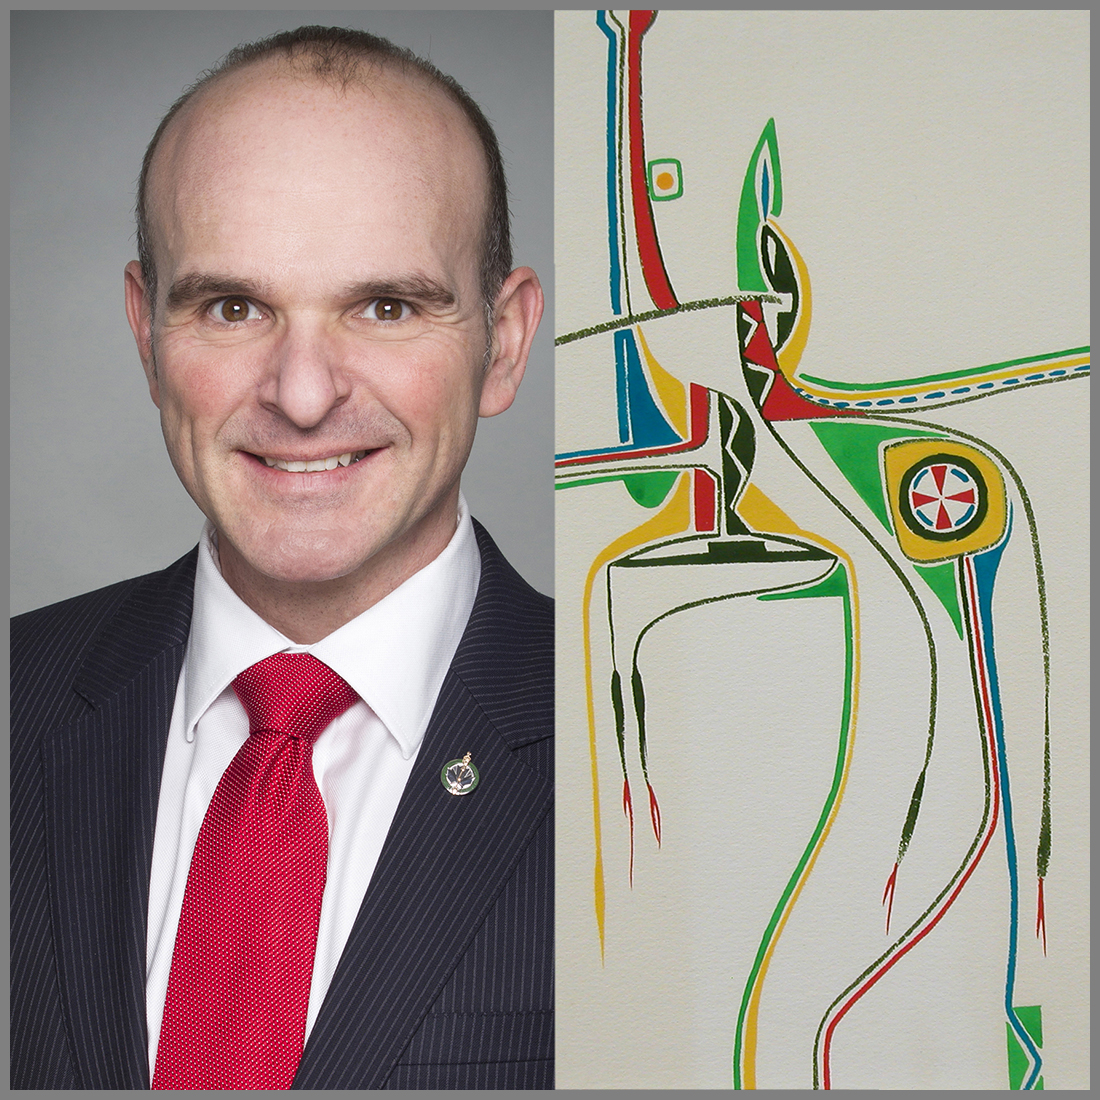 Janvier and Boissonnault